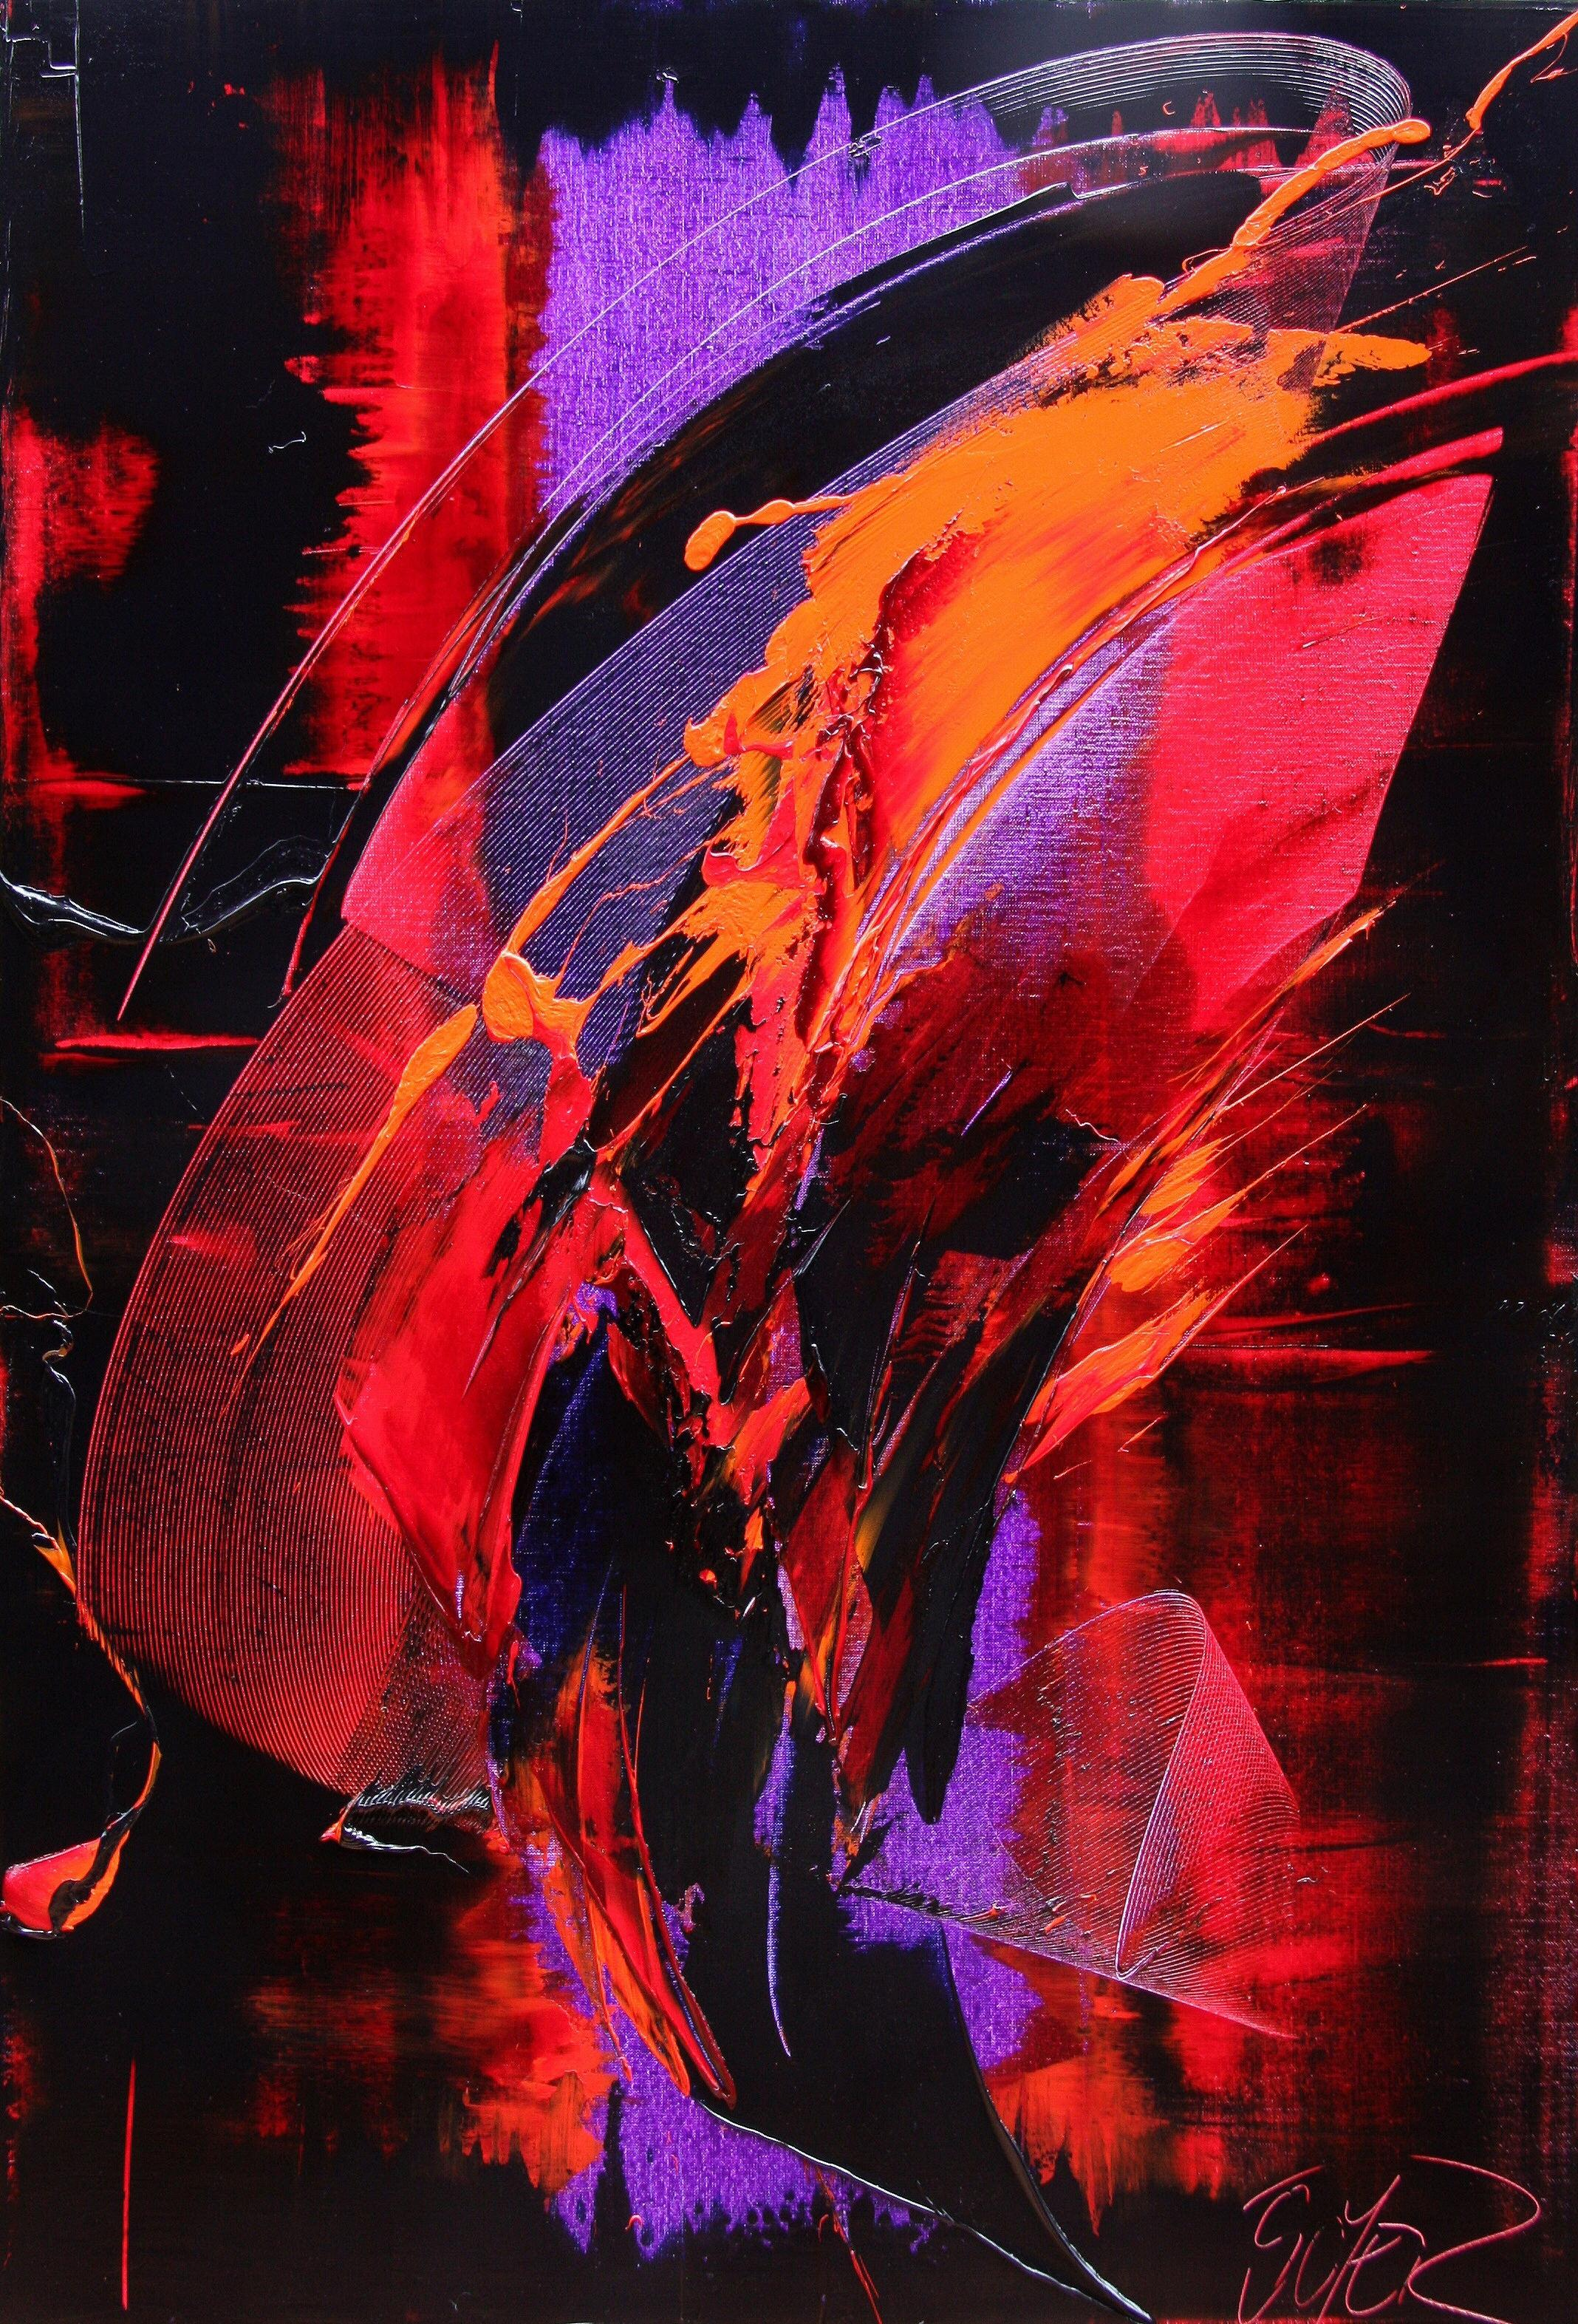 Purple, Red, Orange and Black Vertical Abstract Oil Painting